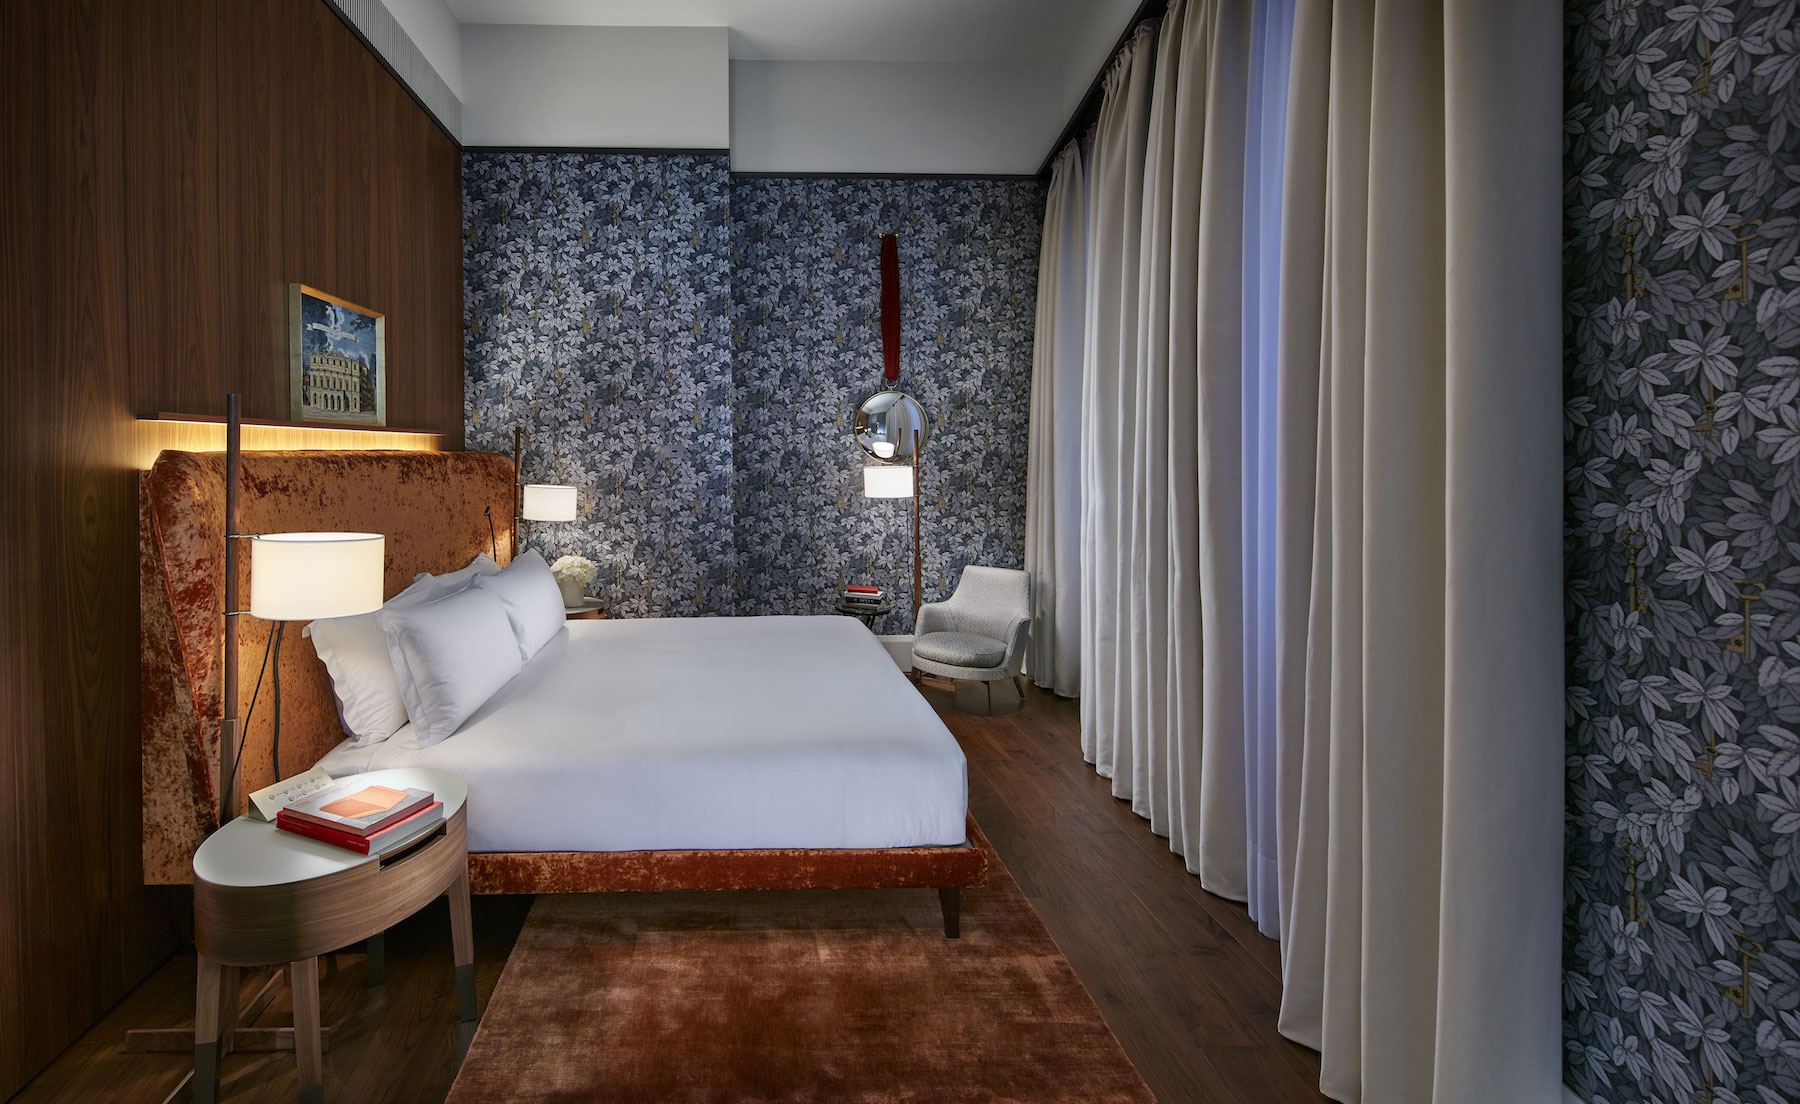 Mandarin oriental speciality suites hotel review milan for Speciality hotels